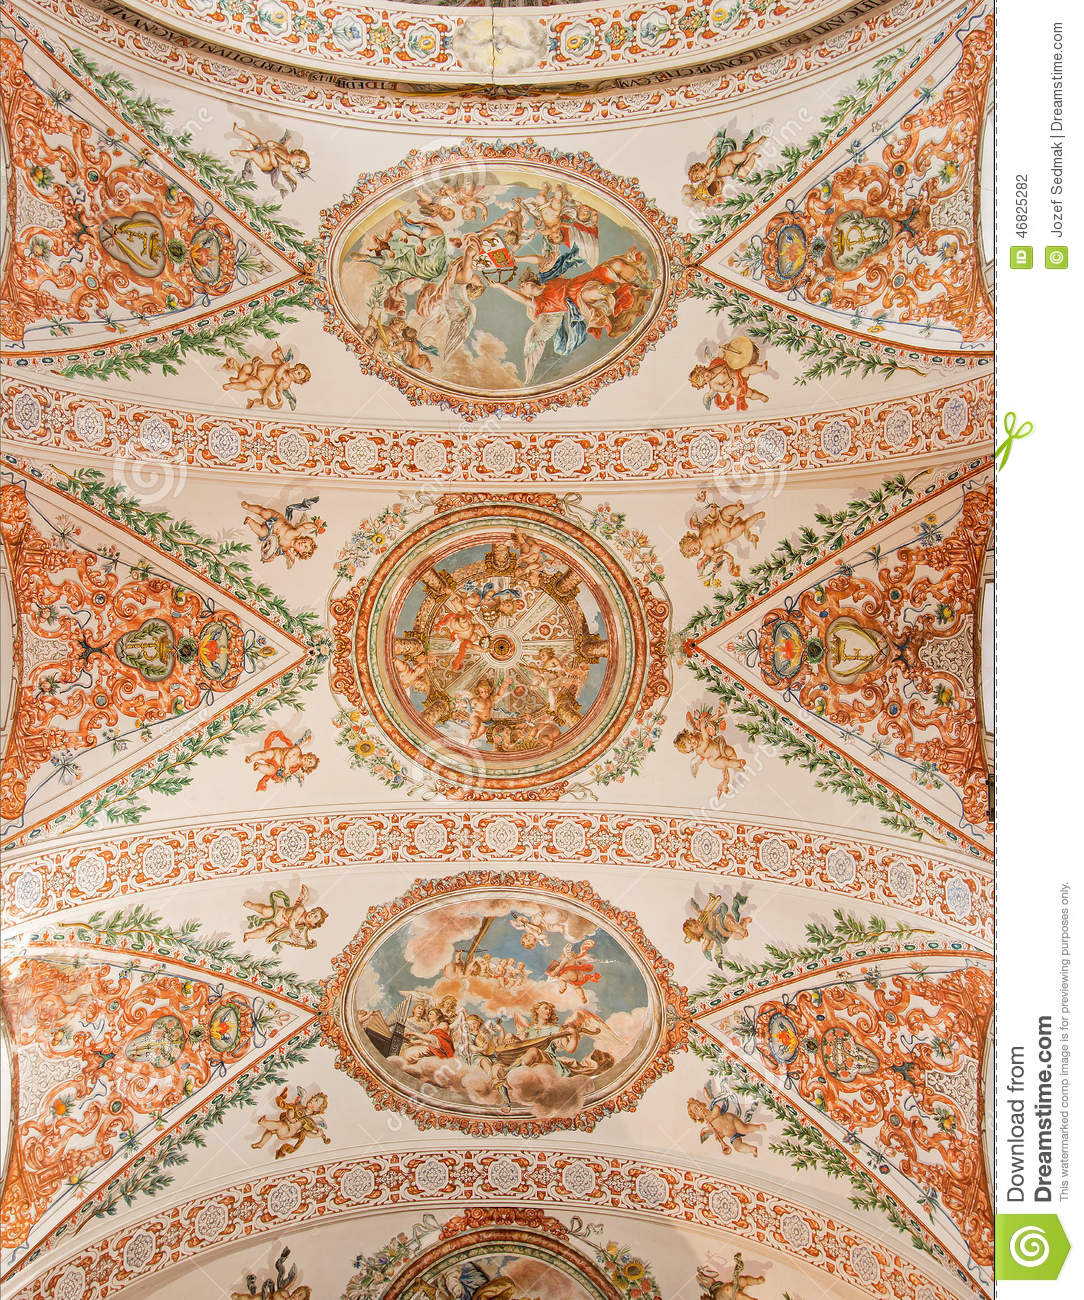 Seville - The Fresco On The Ceiling In Church Hospital De Los Venerables Sace...